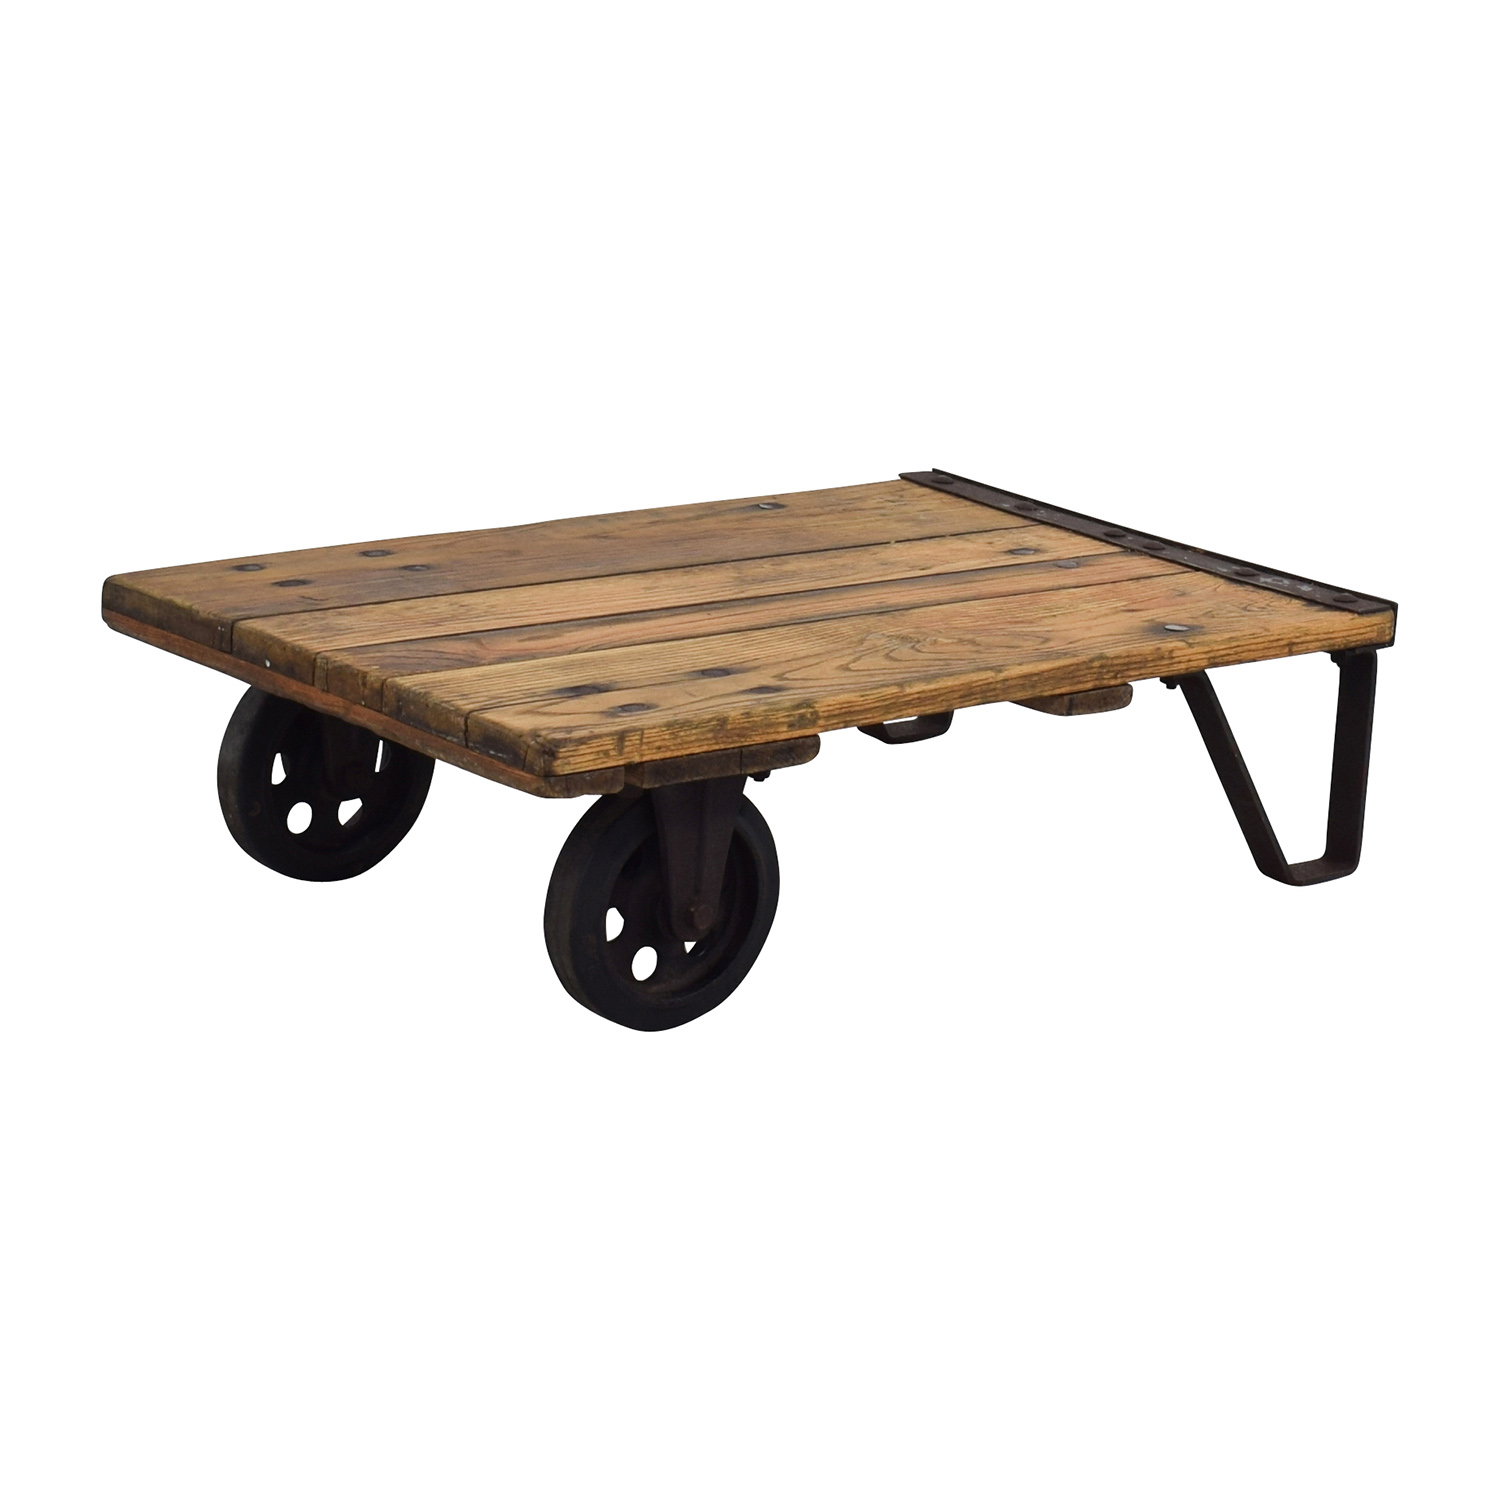 Thomas Truck & Caster Co Restored Industrial Coffee Table sale